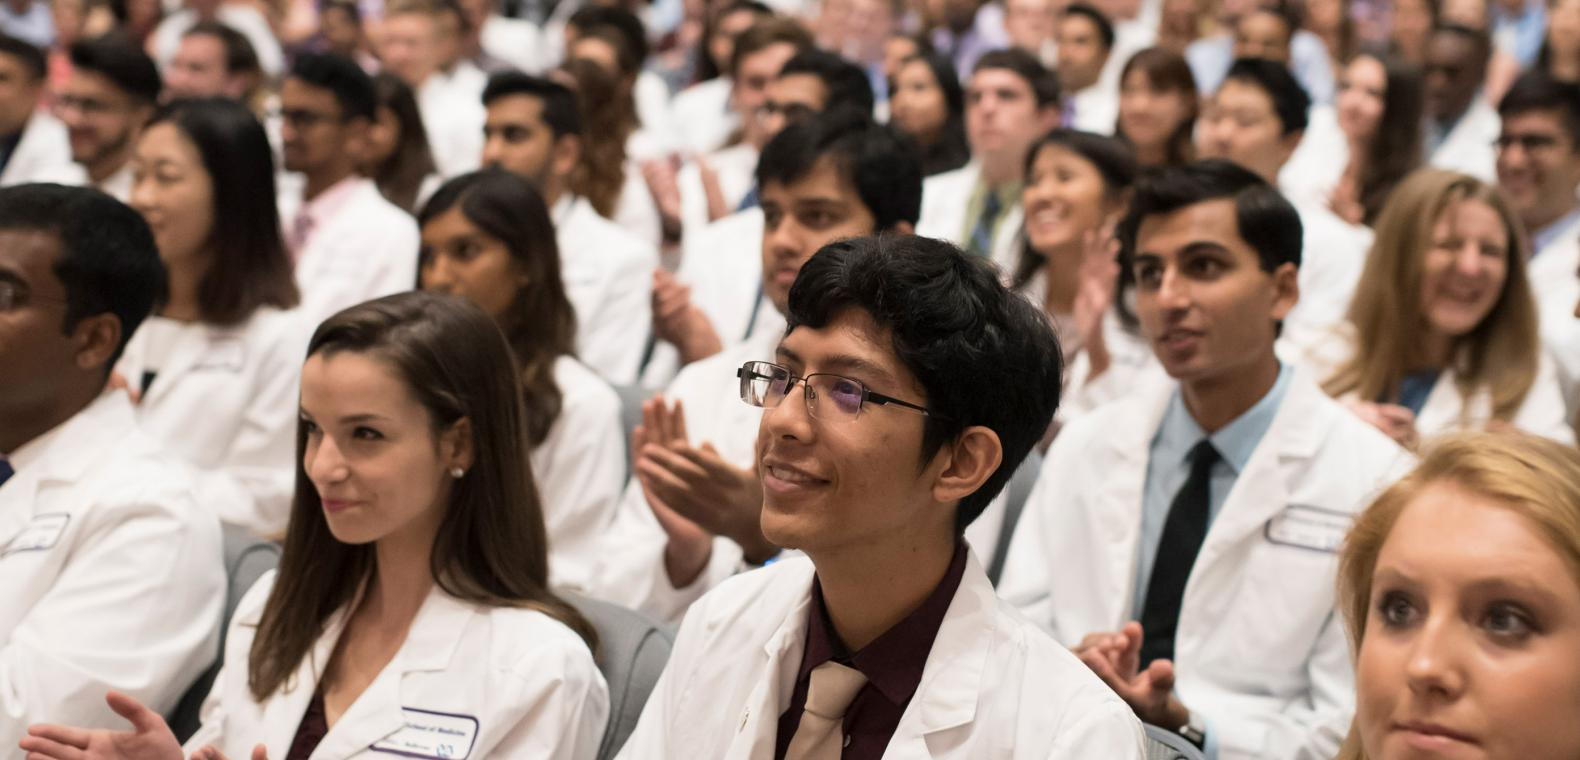 MD Degree | NYU School of Medicine | NYU Langone Health